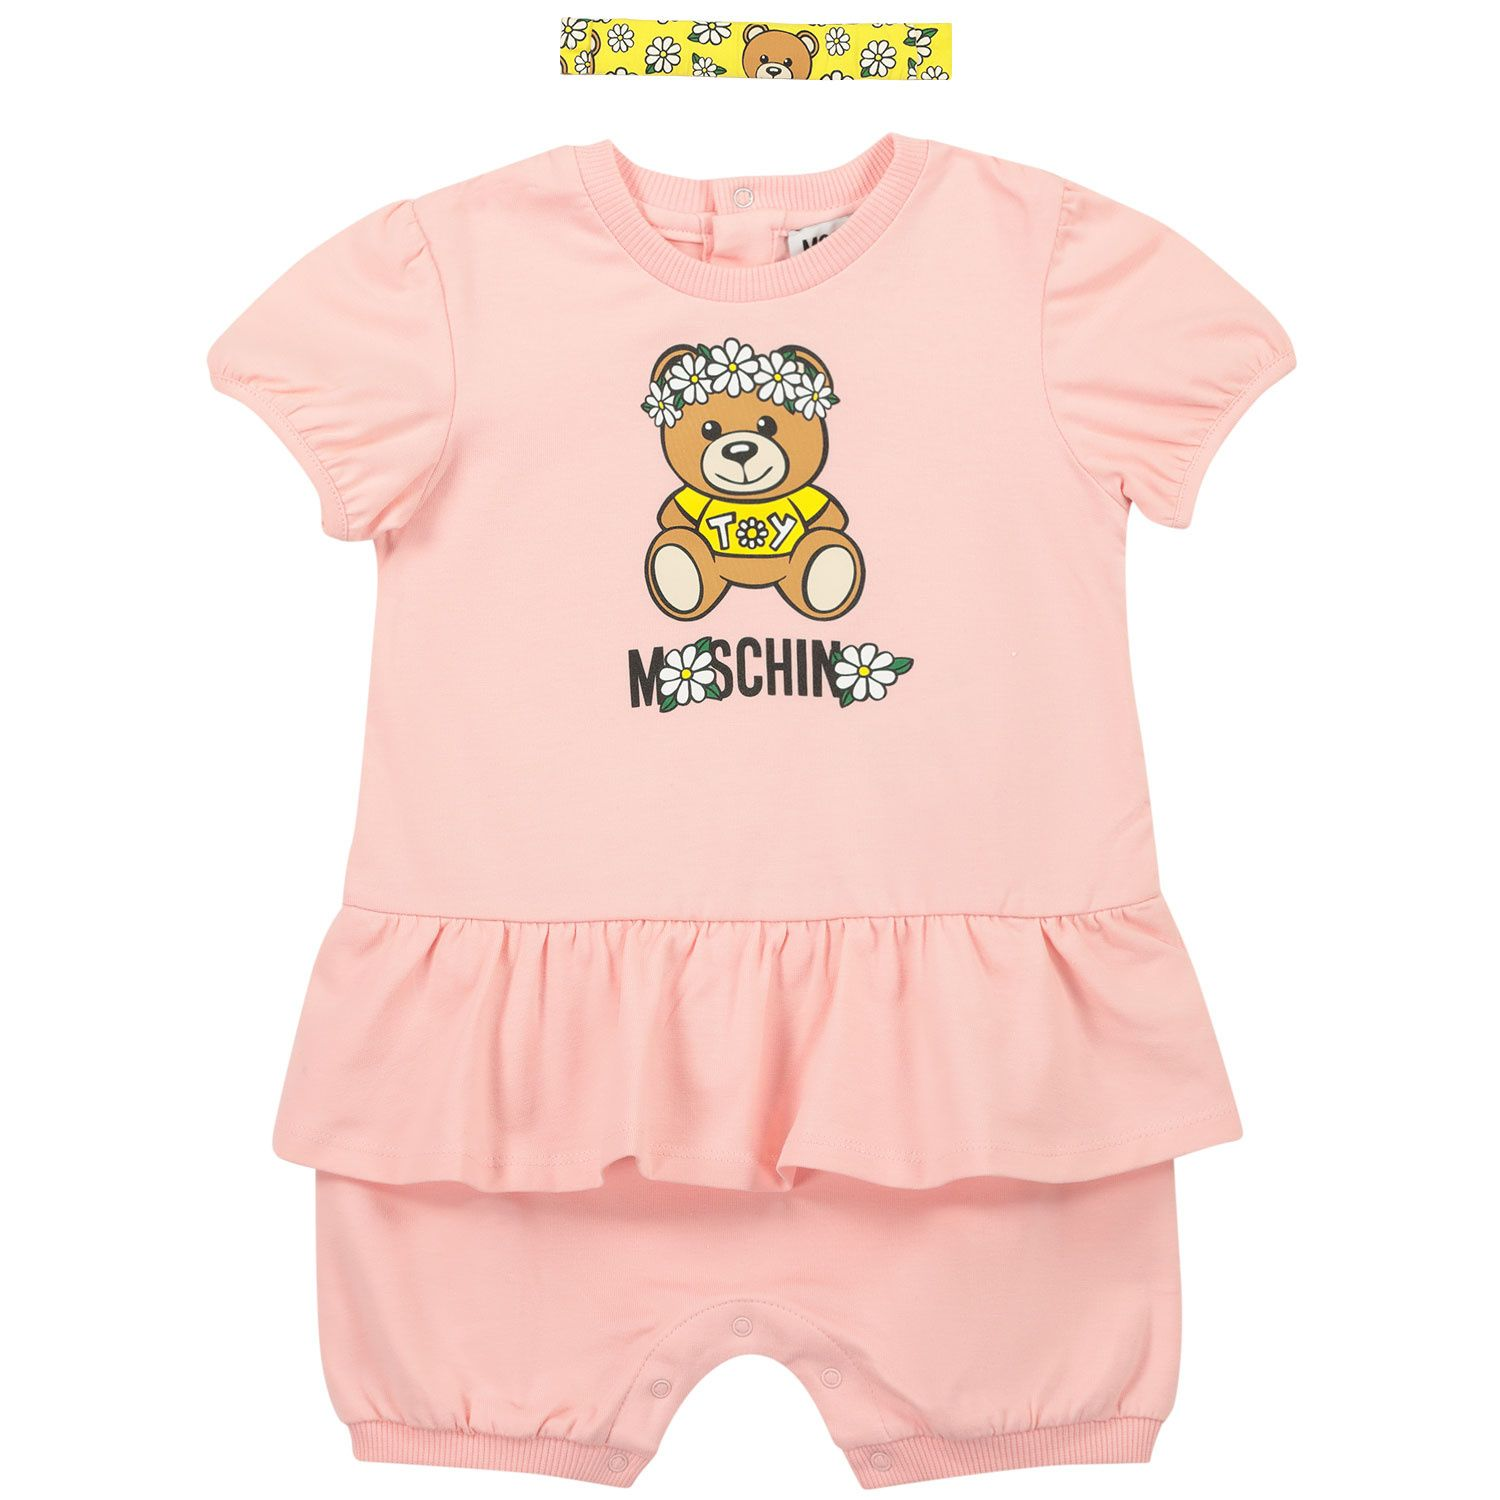 Picture of Moschino MDY00N baby playsuit light pink